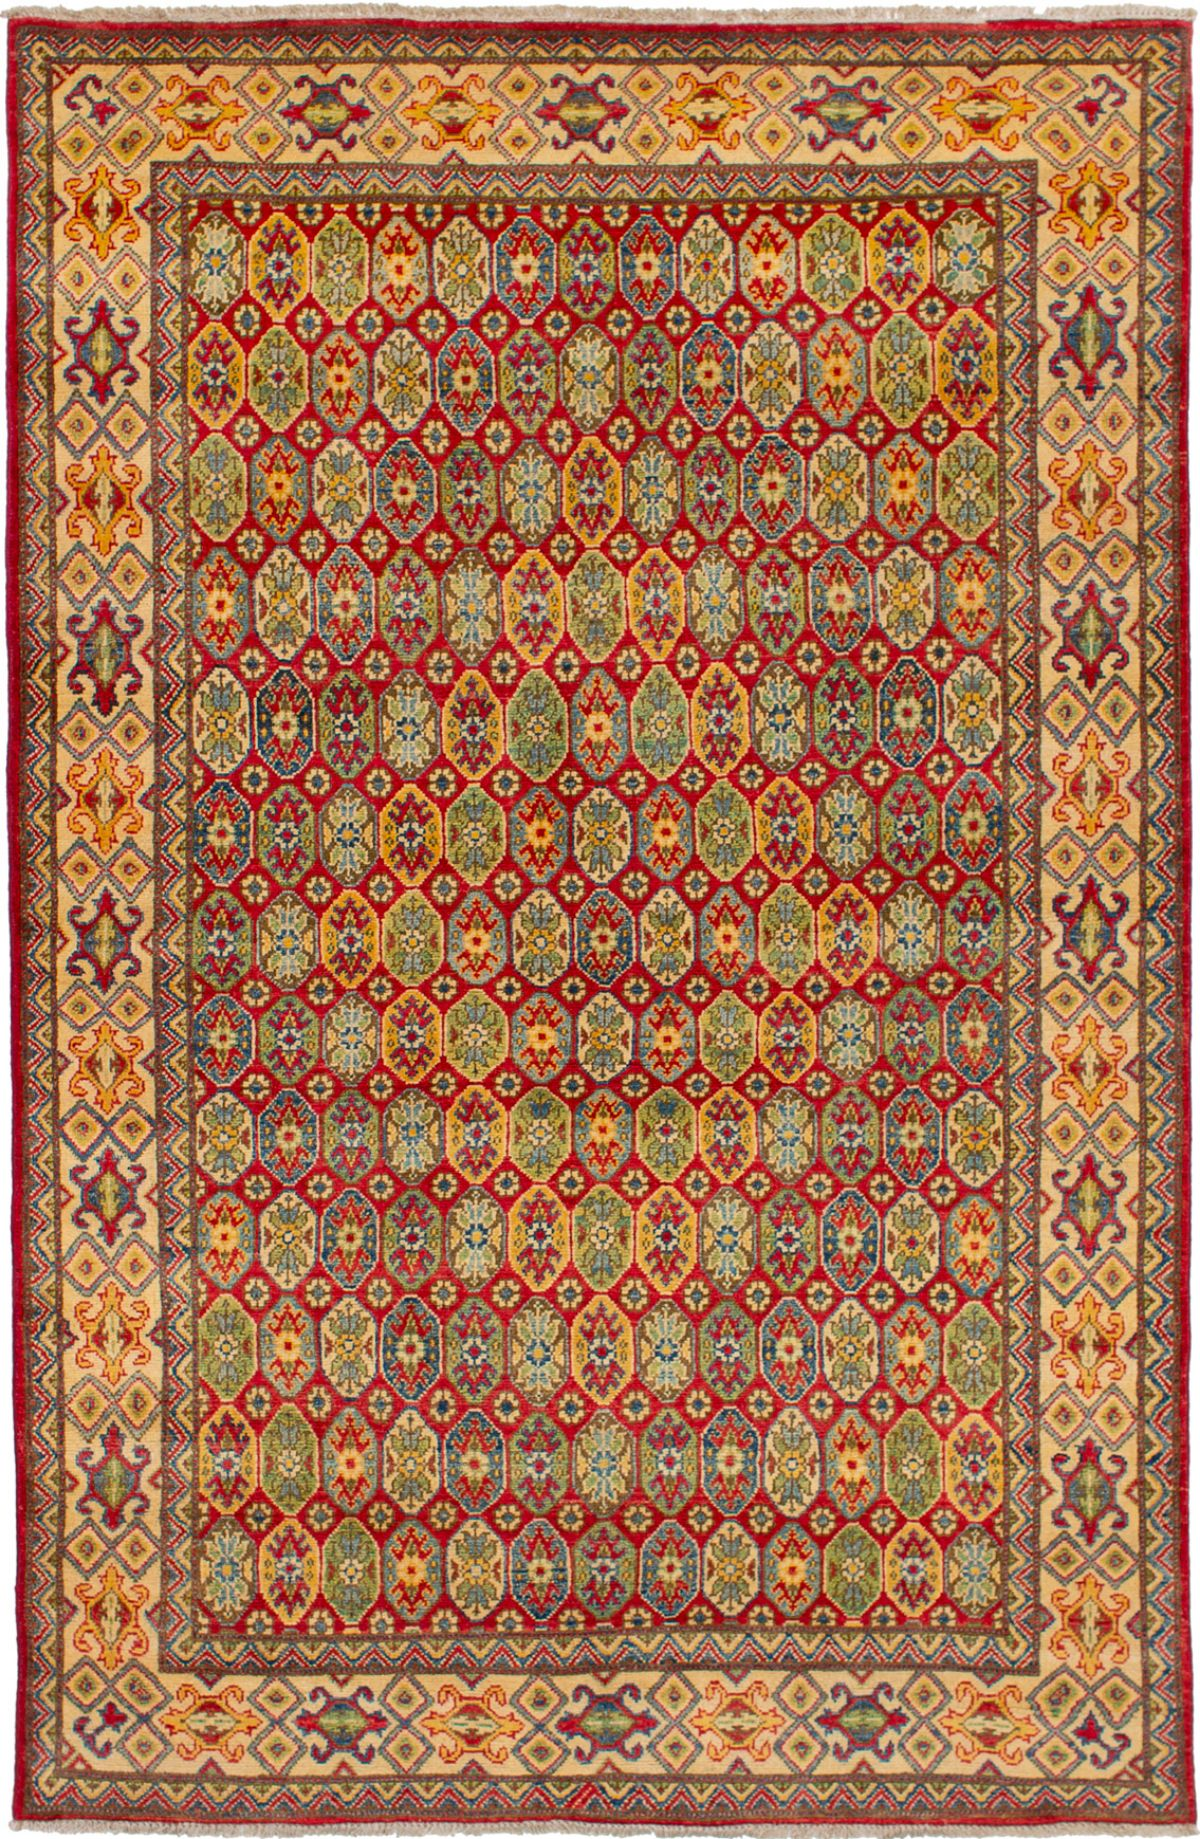 Where to buy Vintage Rugs Online that are Crazy Affordable - Where to buy vintage rugs online that are affordable and reputable - no long lines or traveling!